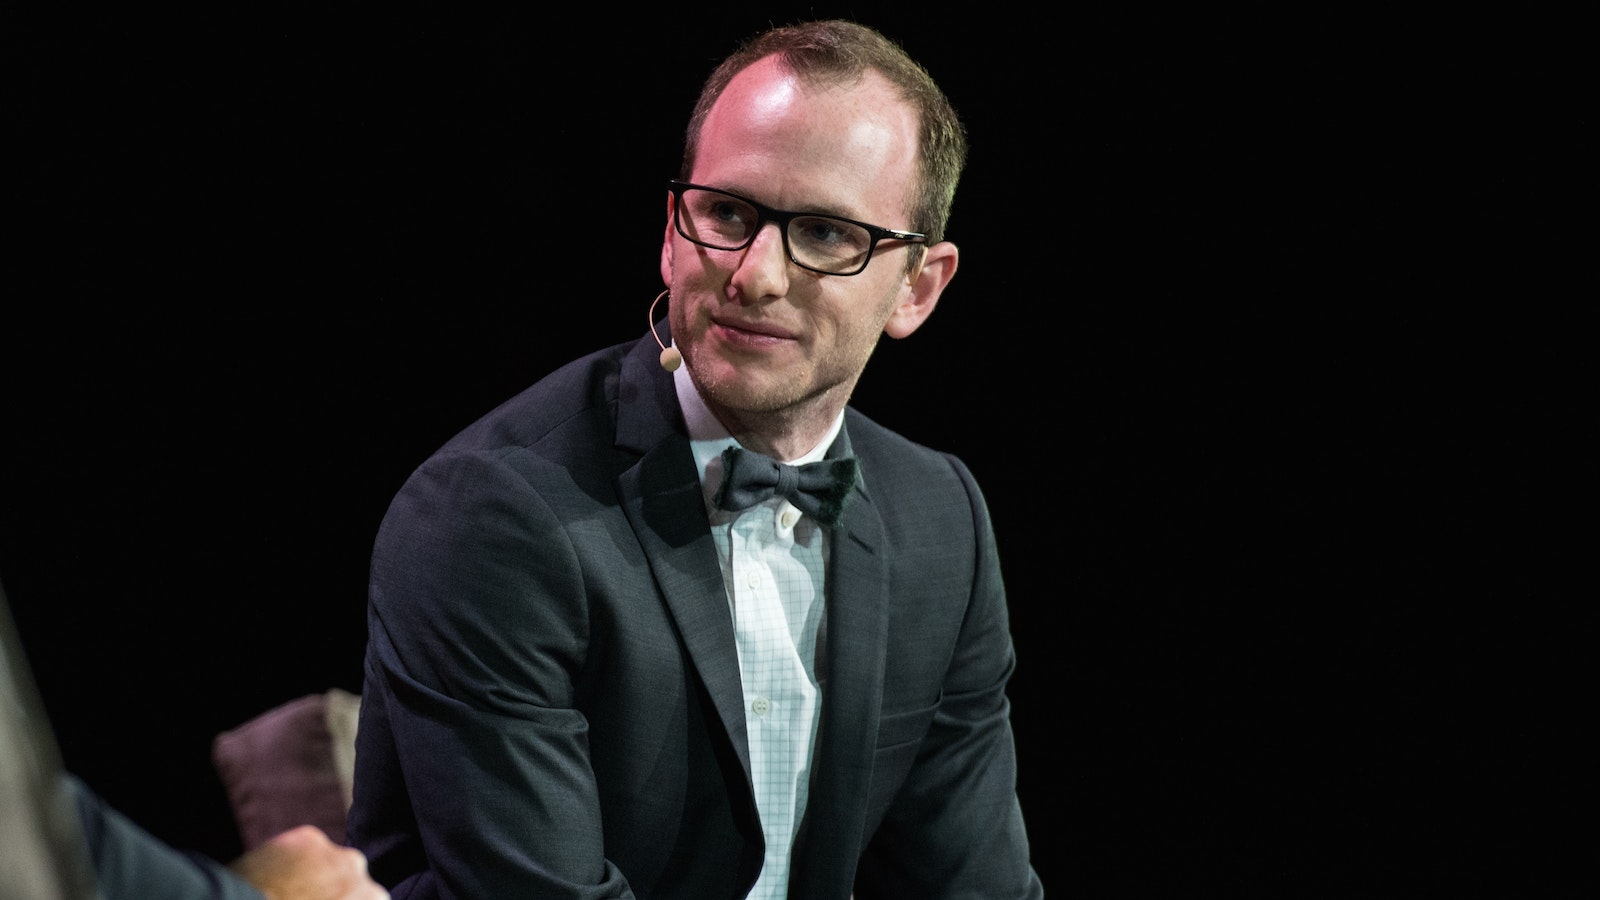 Airbnb co-founder Joe Gebbia. Photo by Flickr/LeWeb